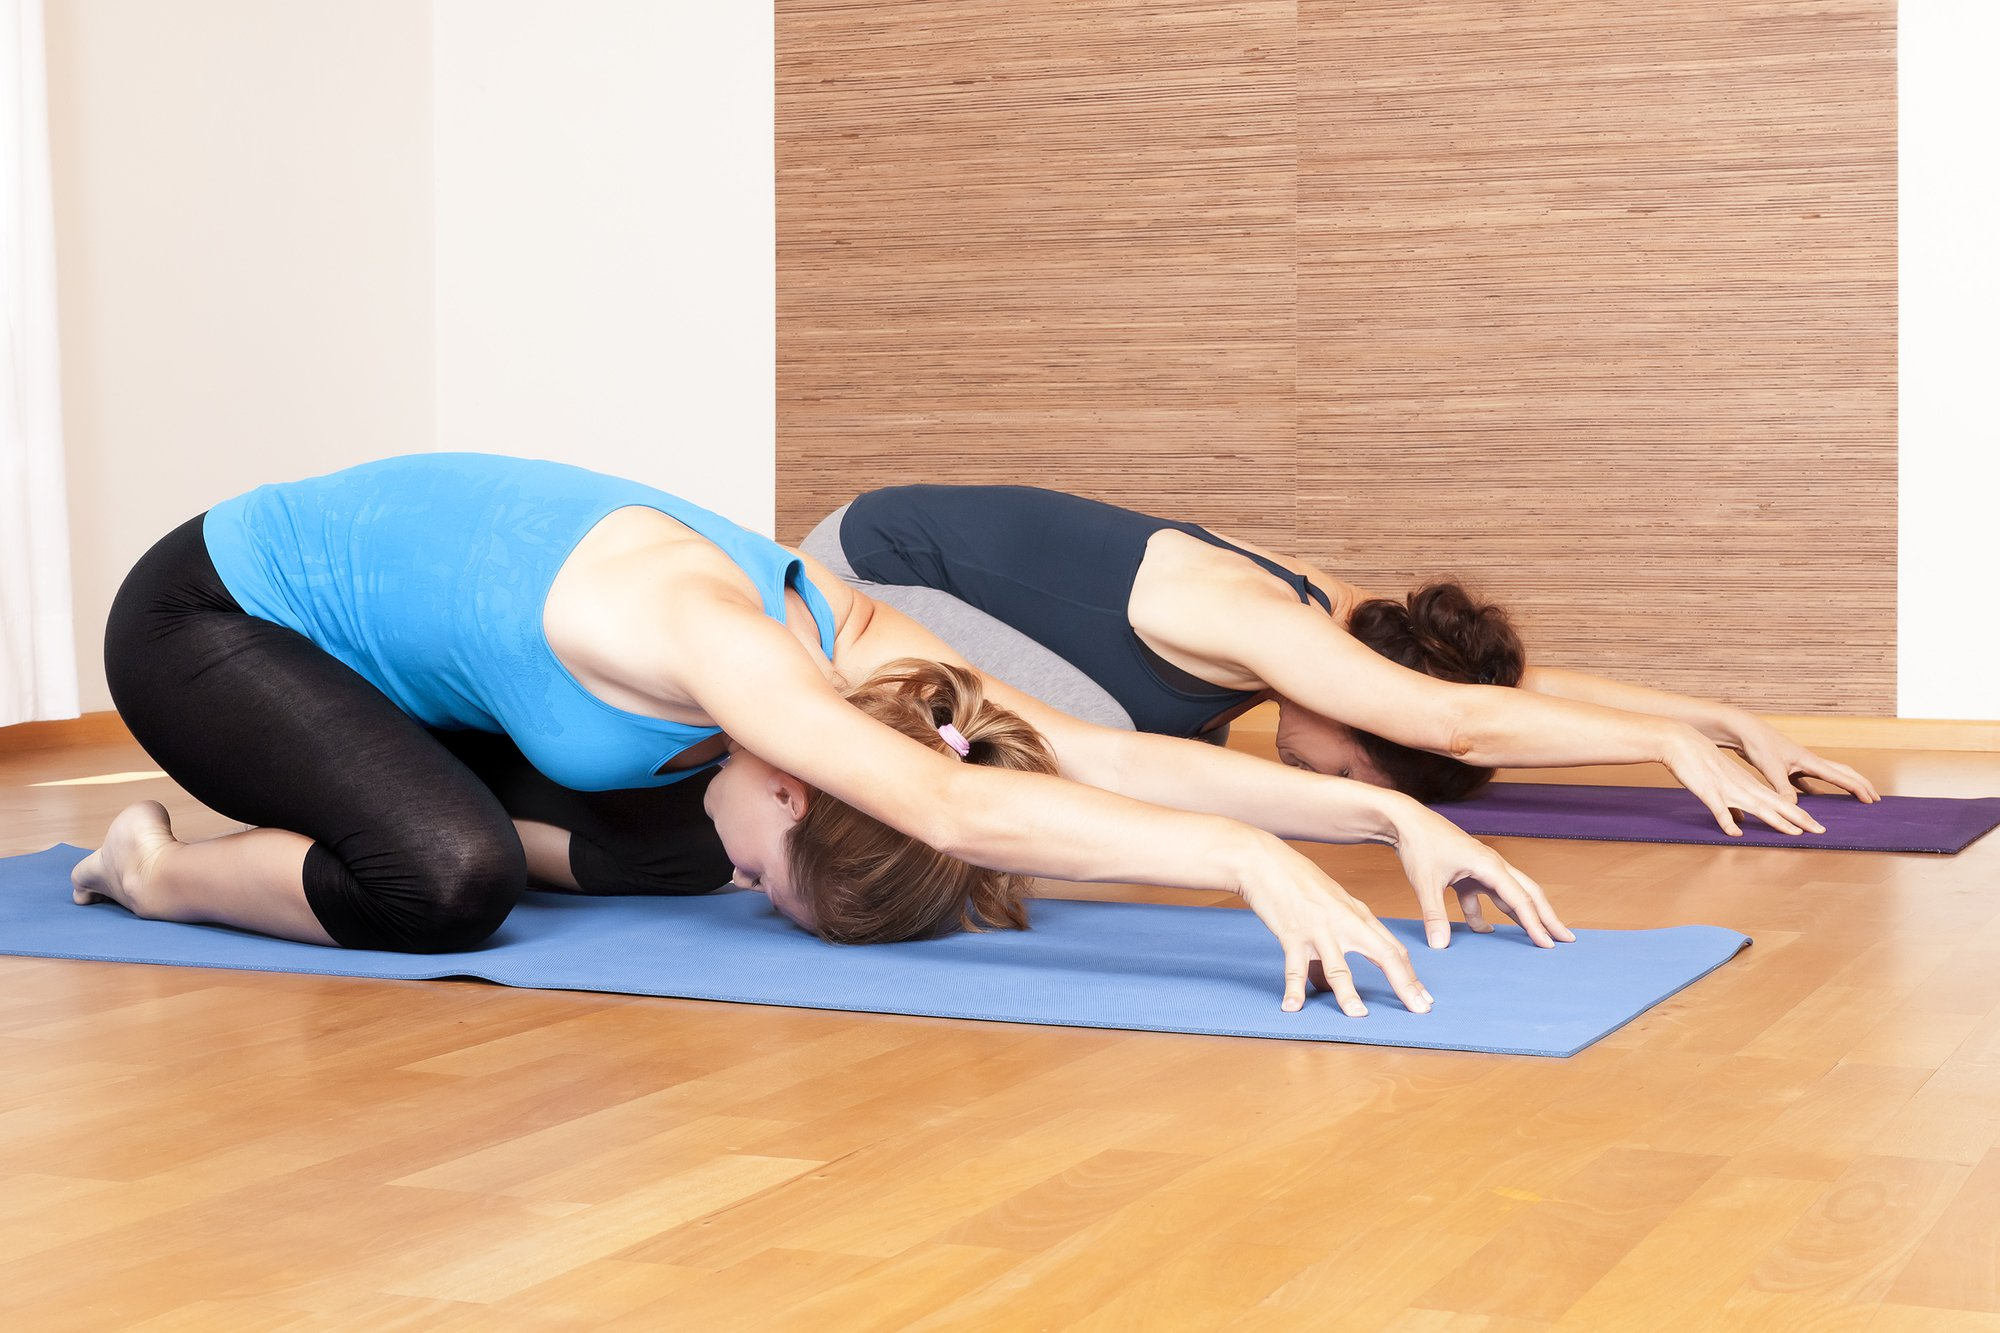 Is Yoga Good for Sciatica?